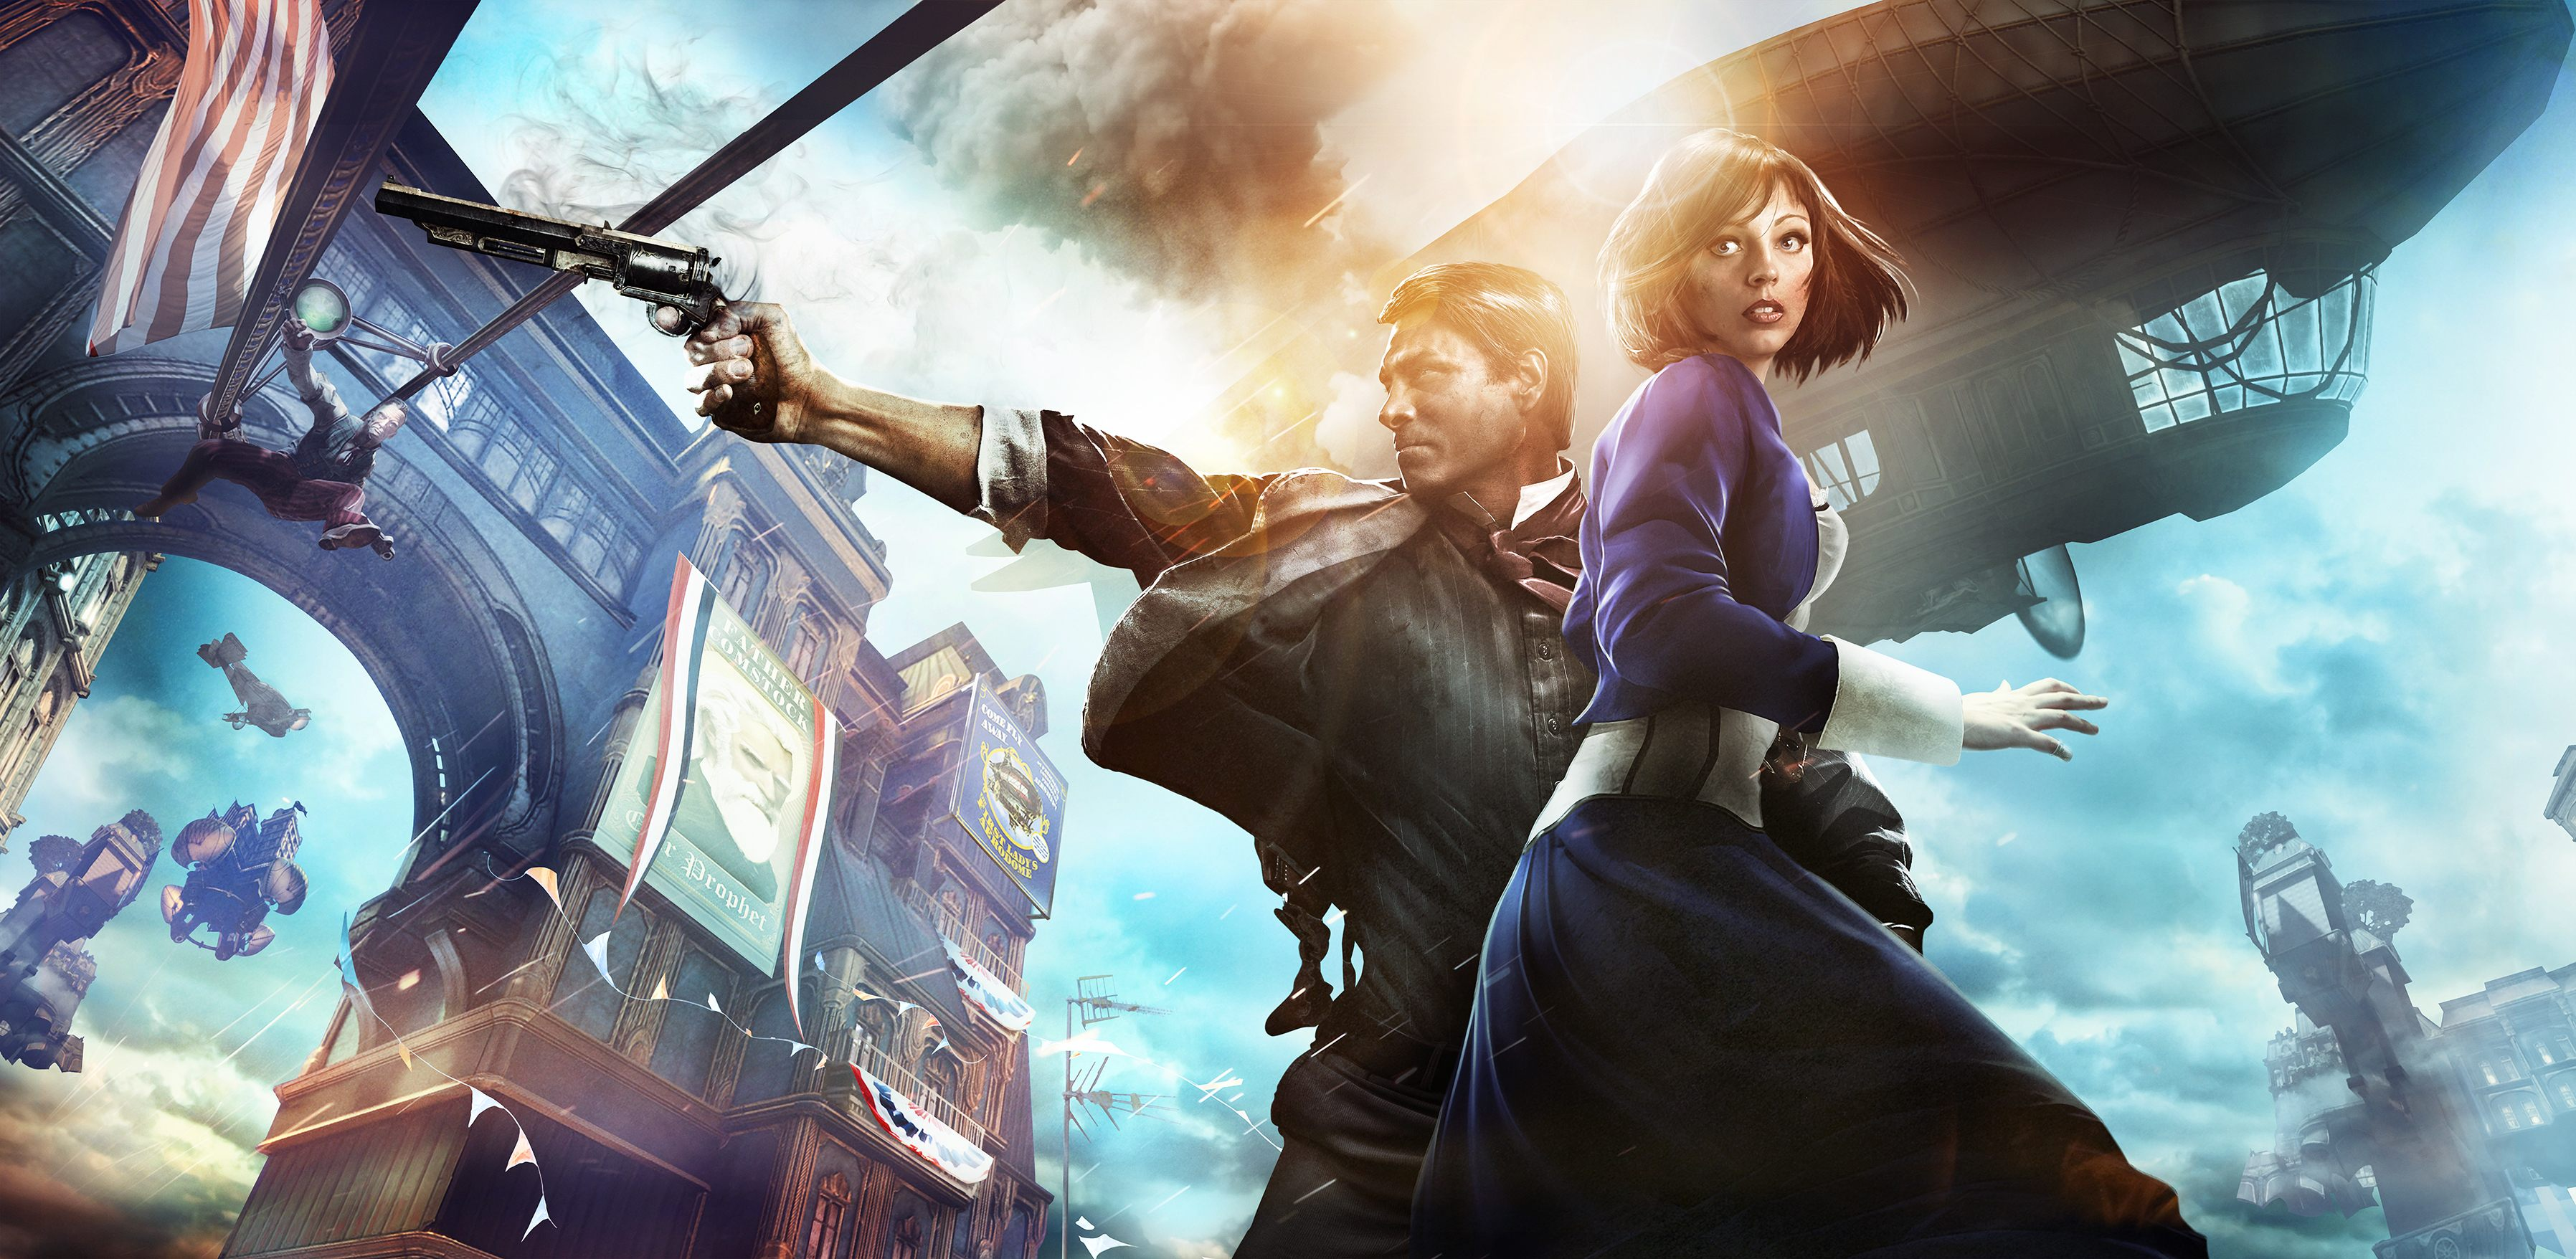 Bioshock Infinite Wallpapers High Resolution 2NY165T   4USkY 3592x1756